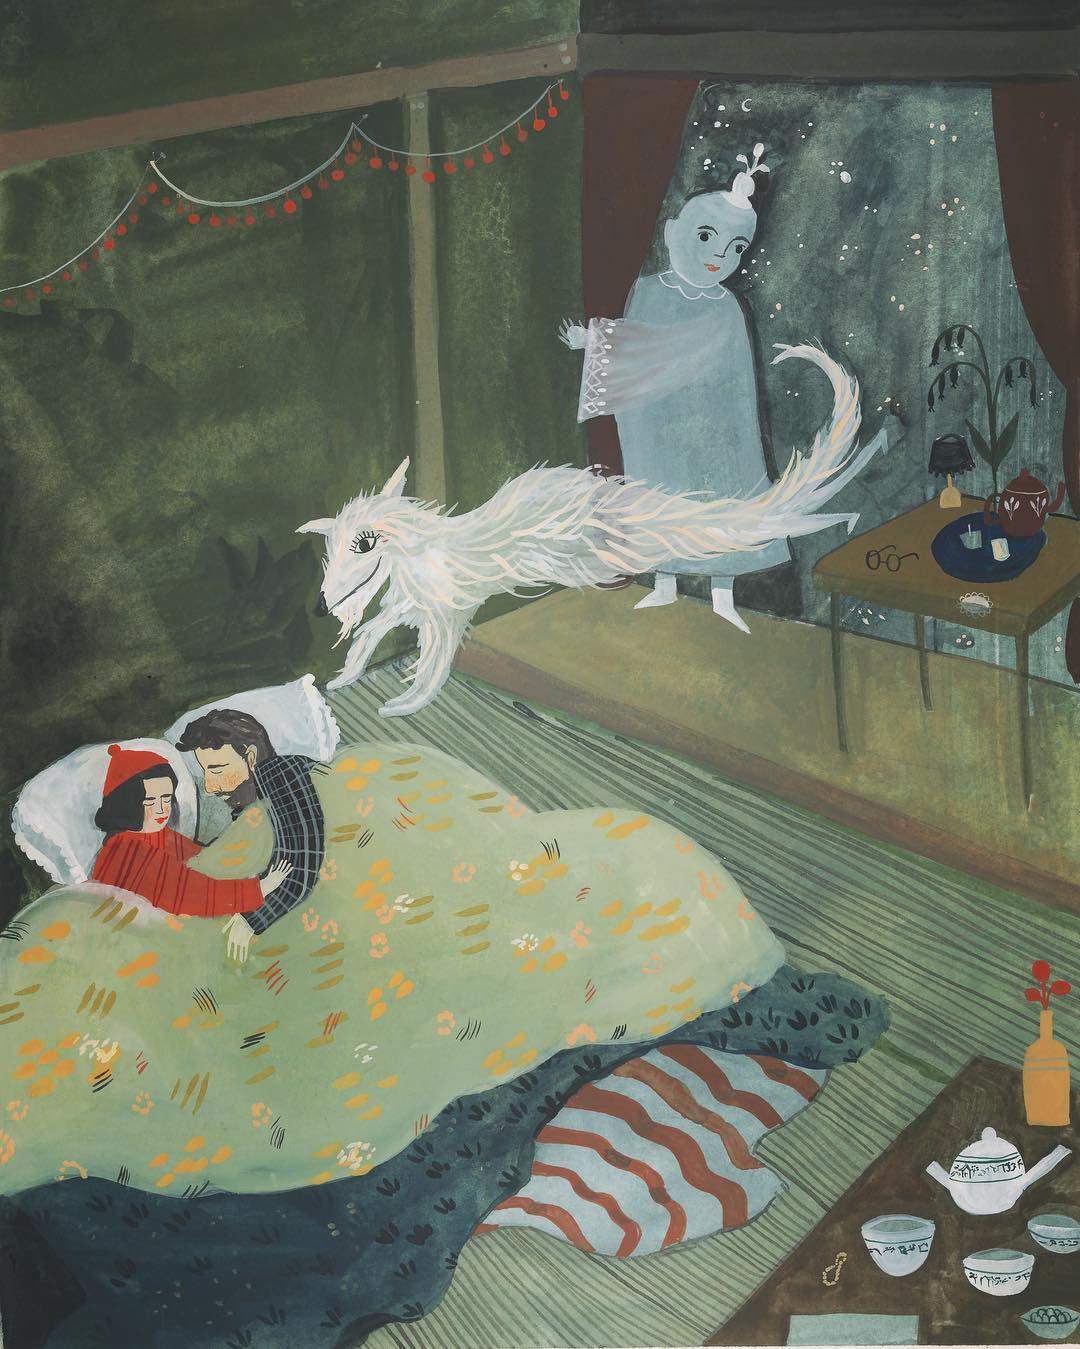 Illustrated dreams by Esmé Shaipro